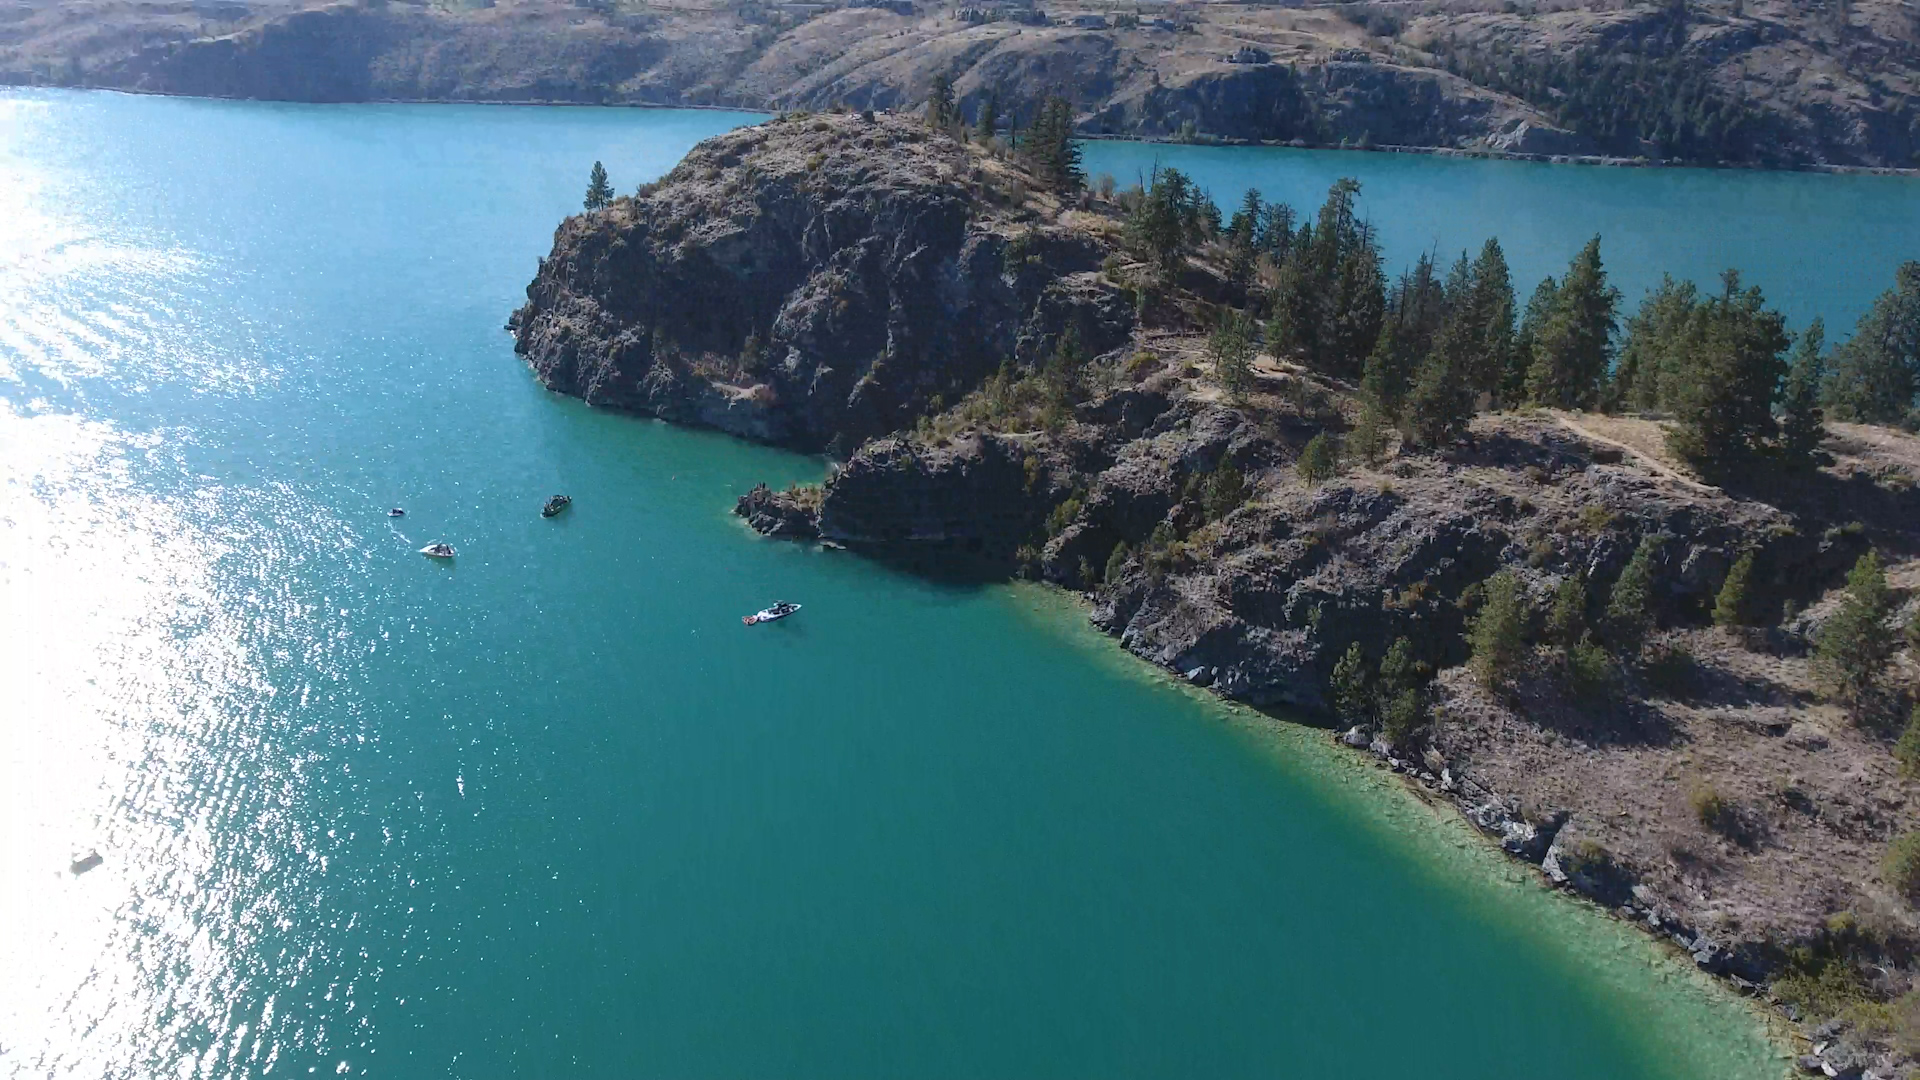 Kalamalka Lake Provincial Park - Cosens Bay & Cliffs